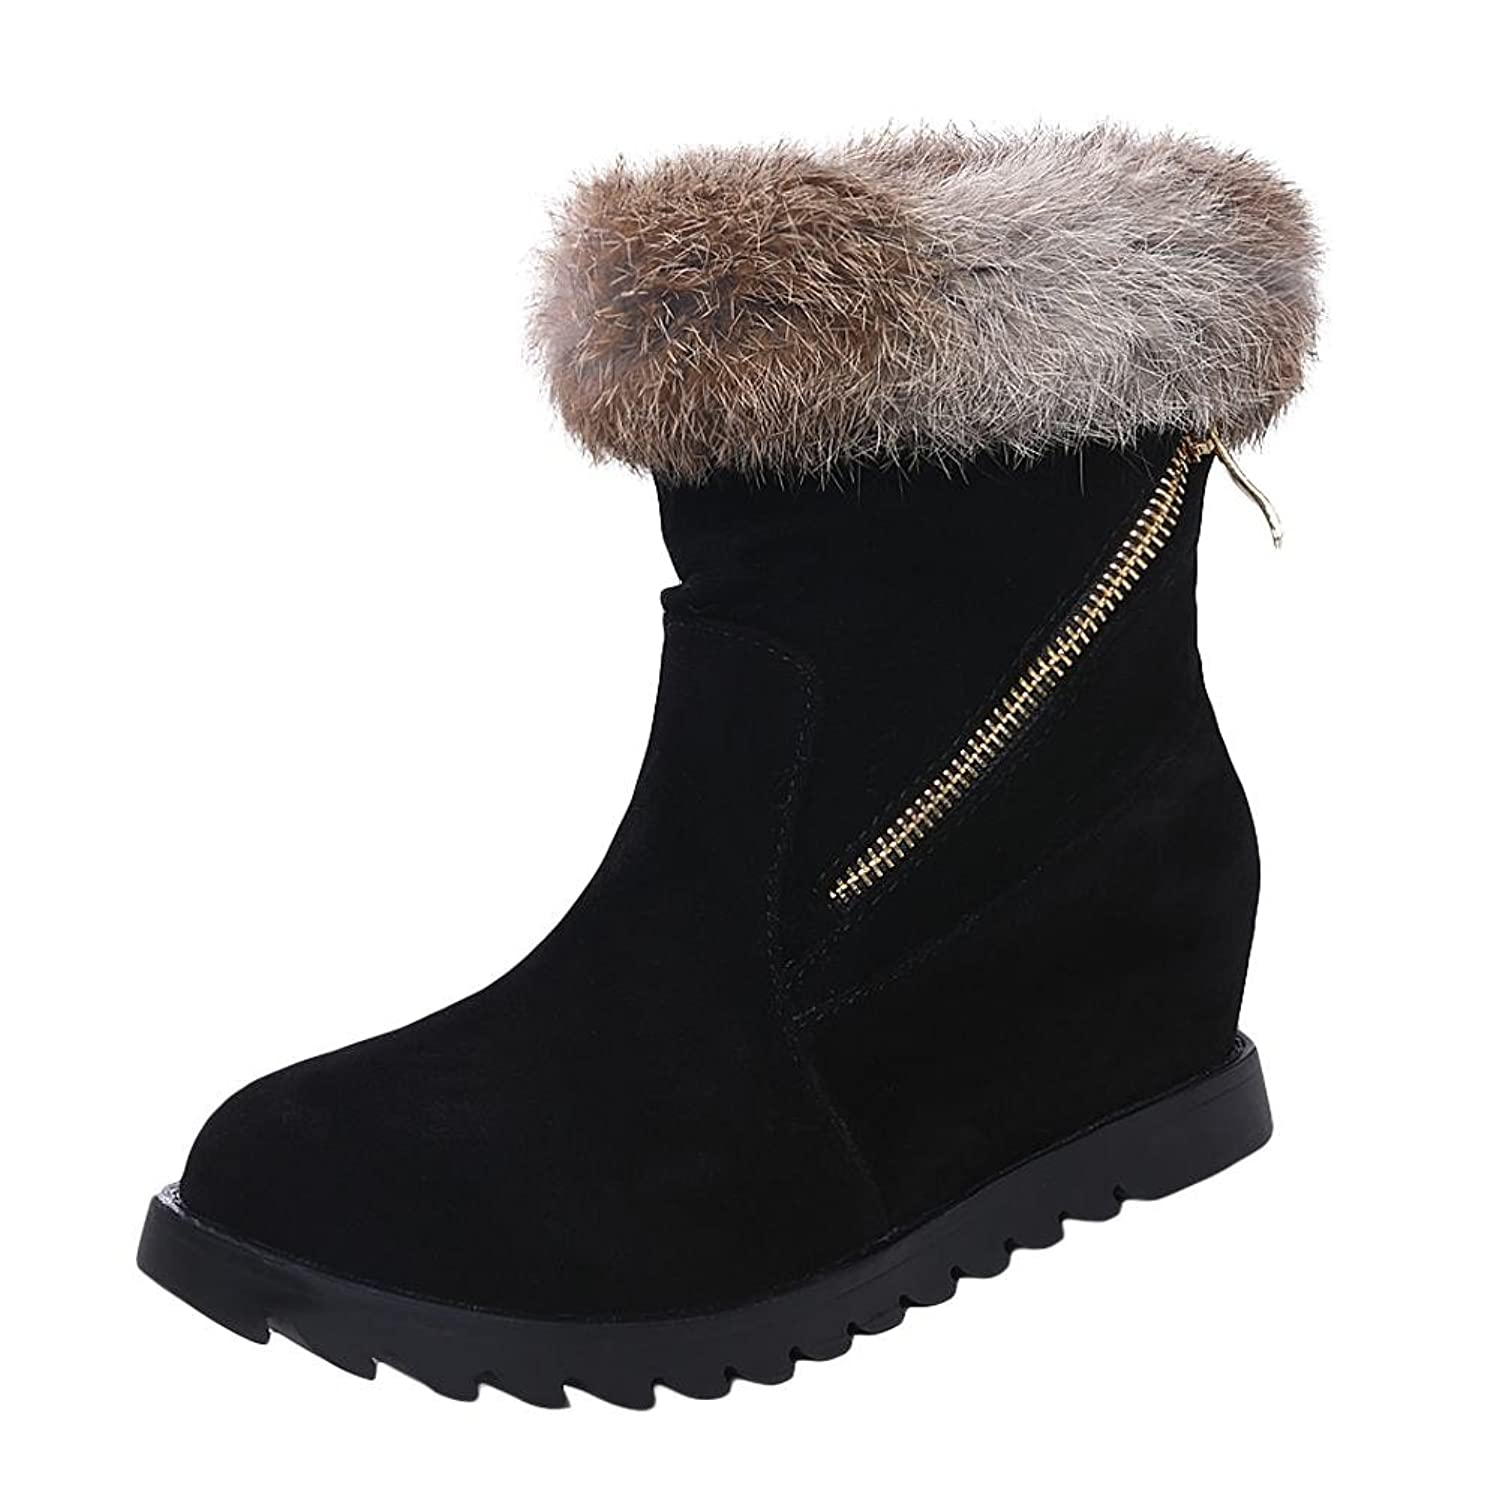 Show Shine Women's Casual Zippers Hidden Heel Platform Snow Boots